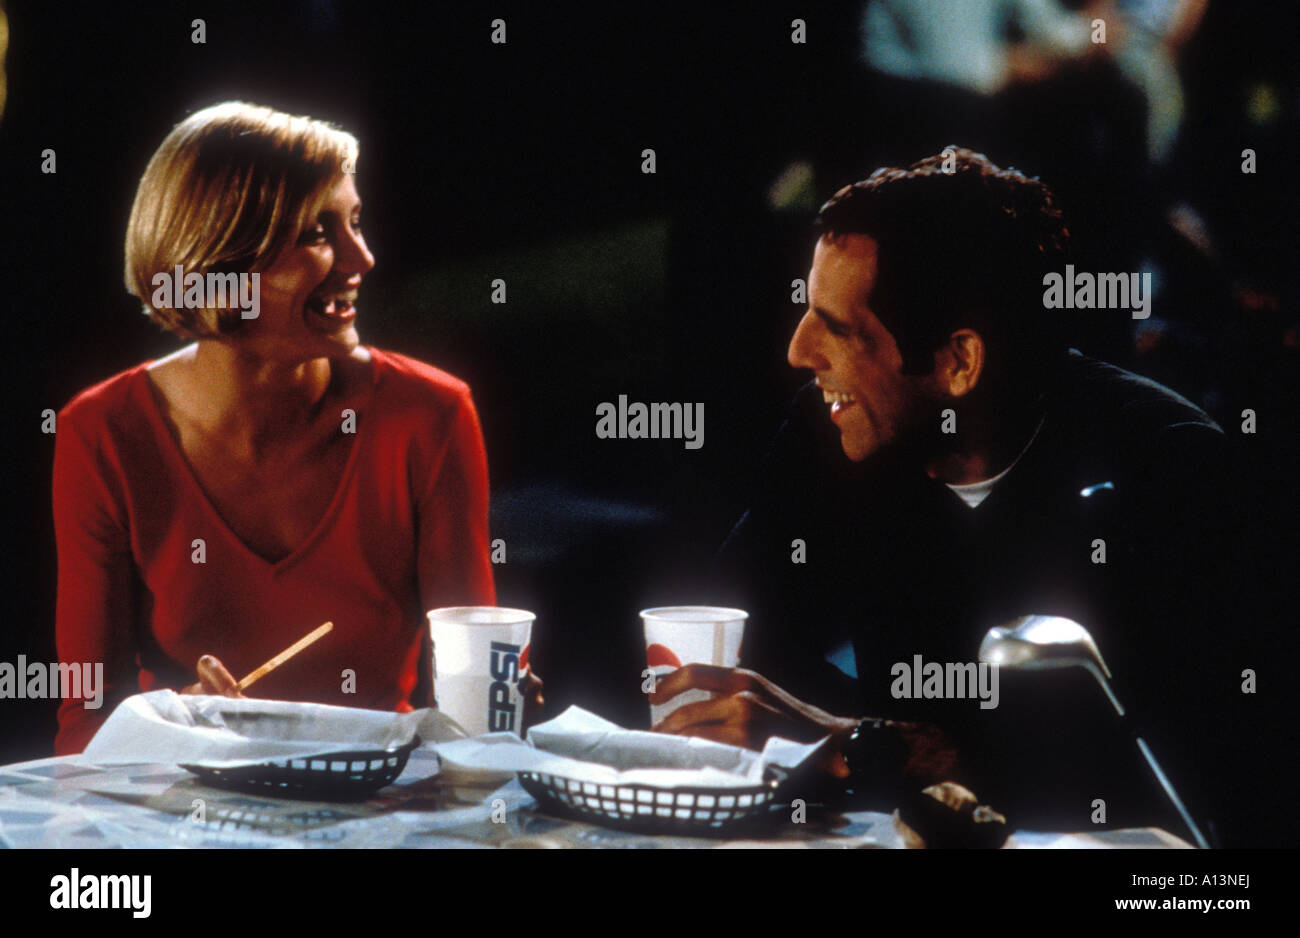 There s Something About Mary Year 1998 Directors Bobby and Peter Farrelly Cameron Diaz Ben Stiller - Stock Image